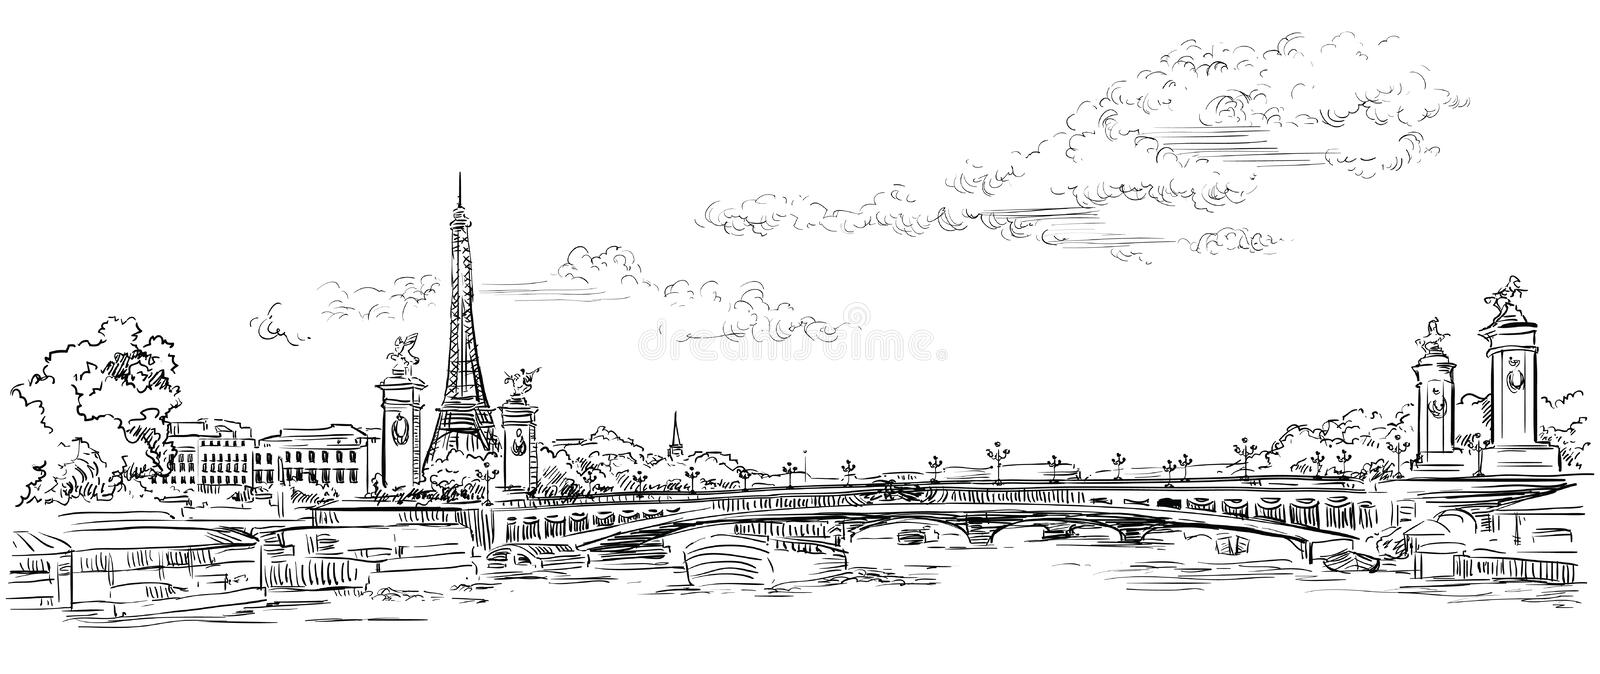 Main de vecteur dessinant Paris 4 illustration de vecteur